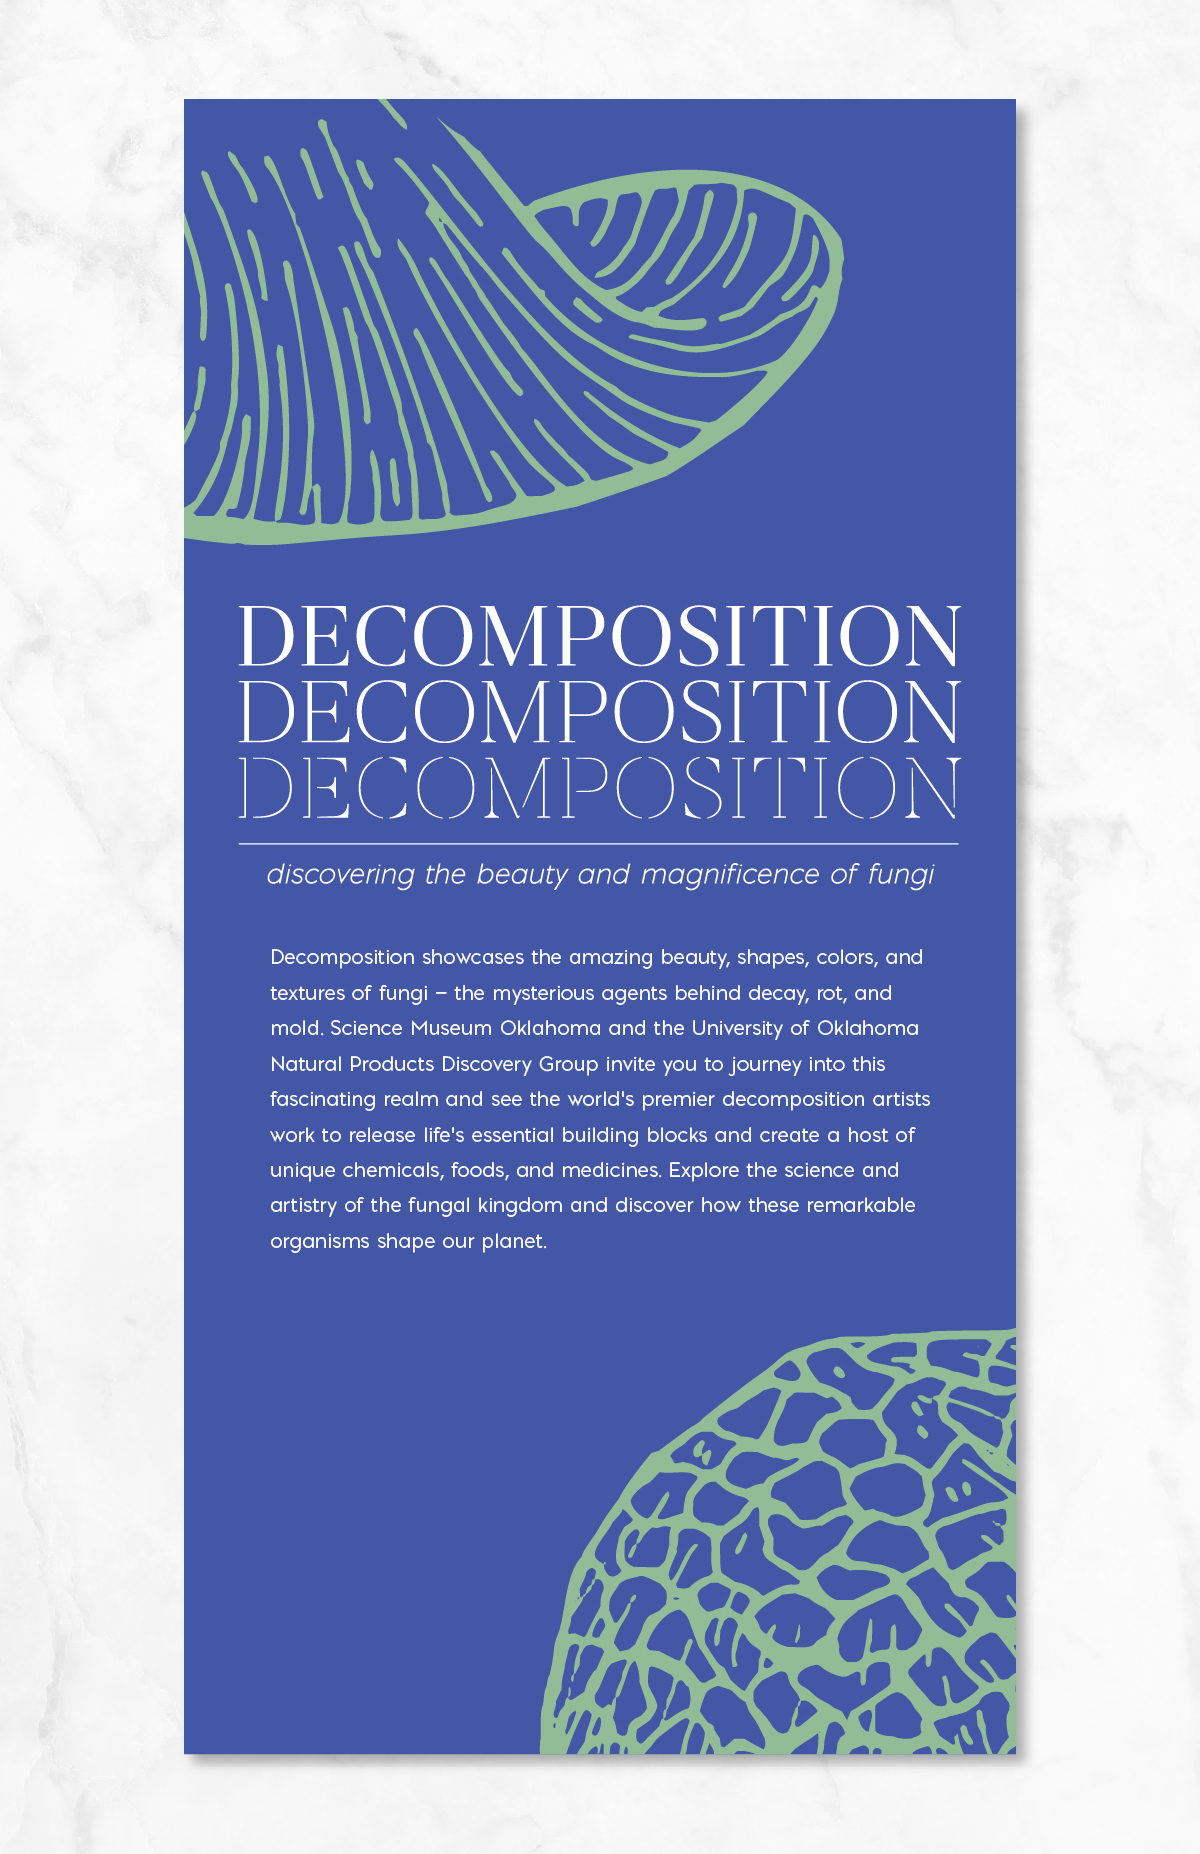 Erin DeMoss - Decomposition - Science Museum Oklahoma Exhibit Signage